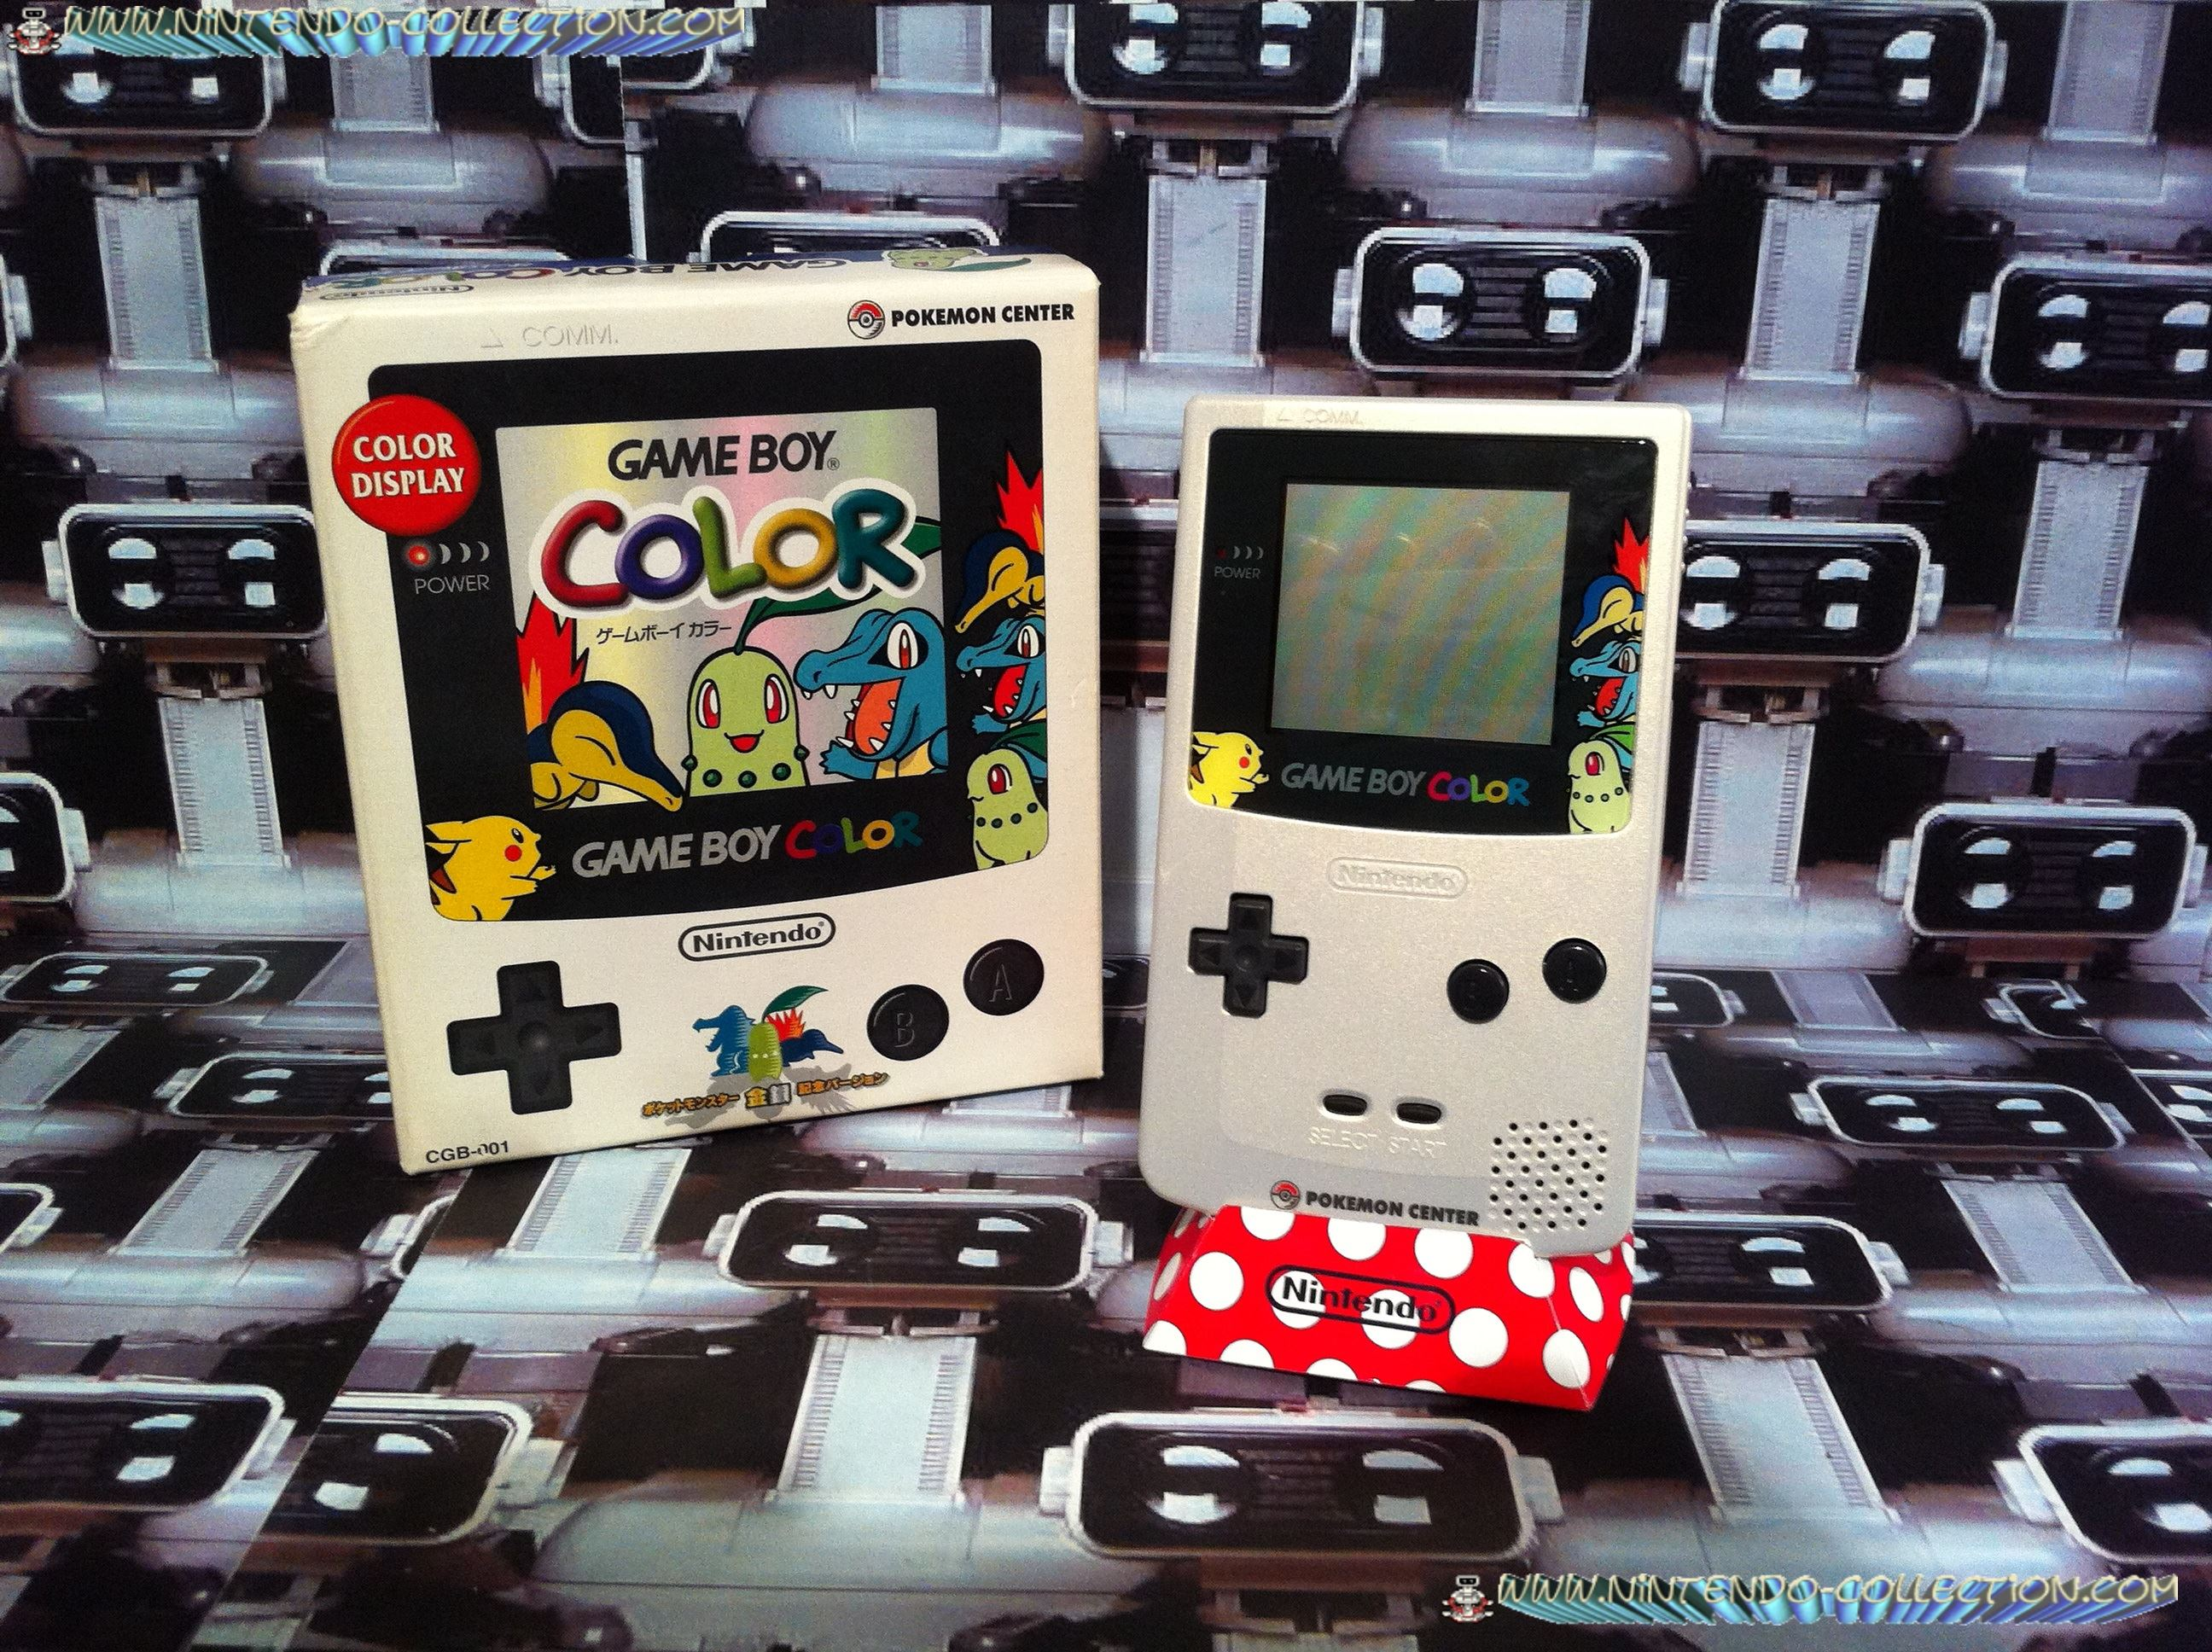 www.nintendo-collection.com - Gameboy Color Pokemon Gold Silver Or Argent edition pokemon center Jap